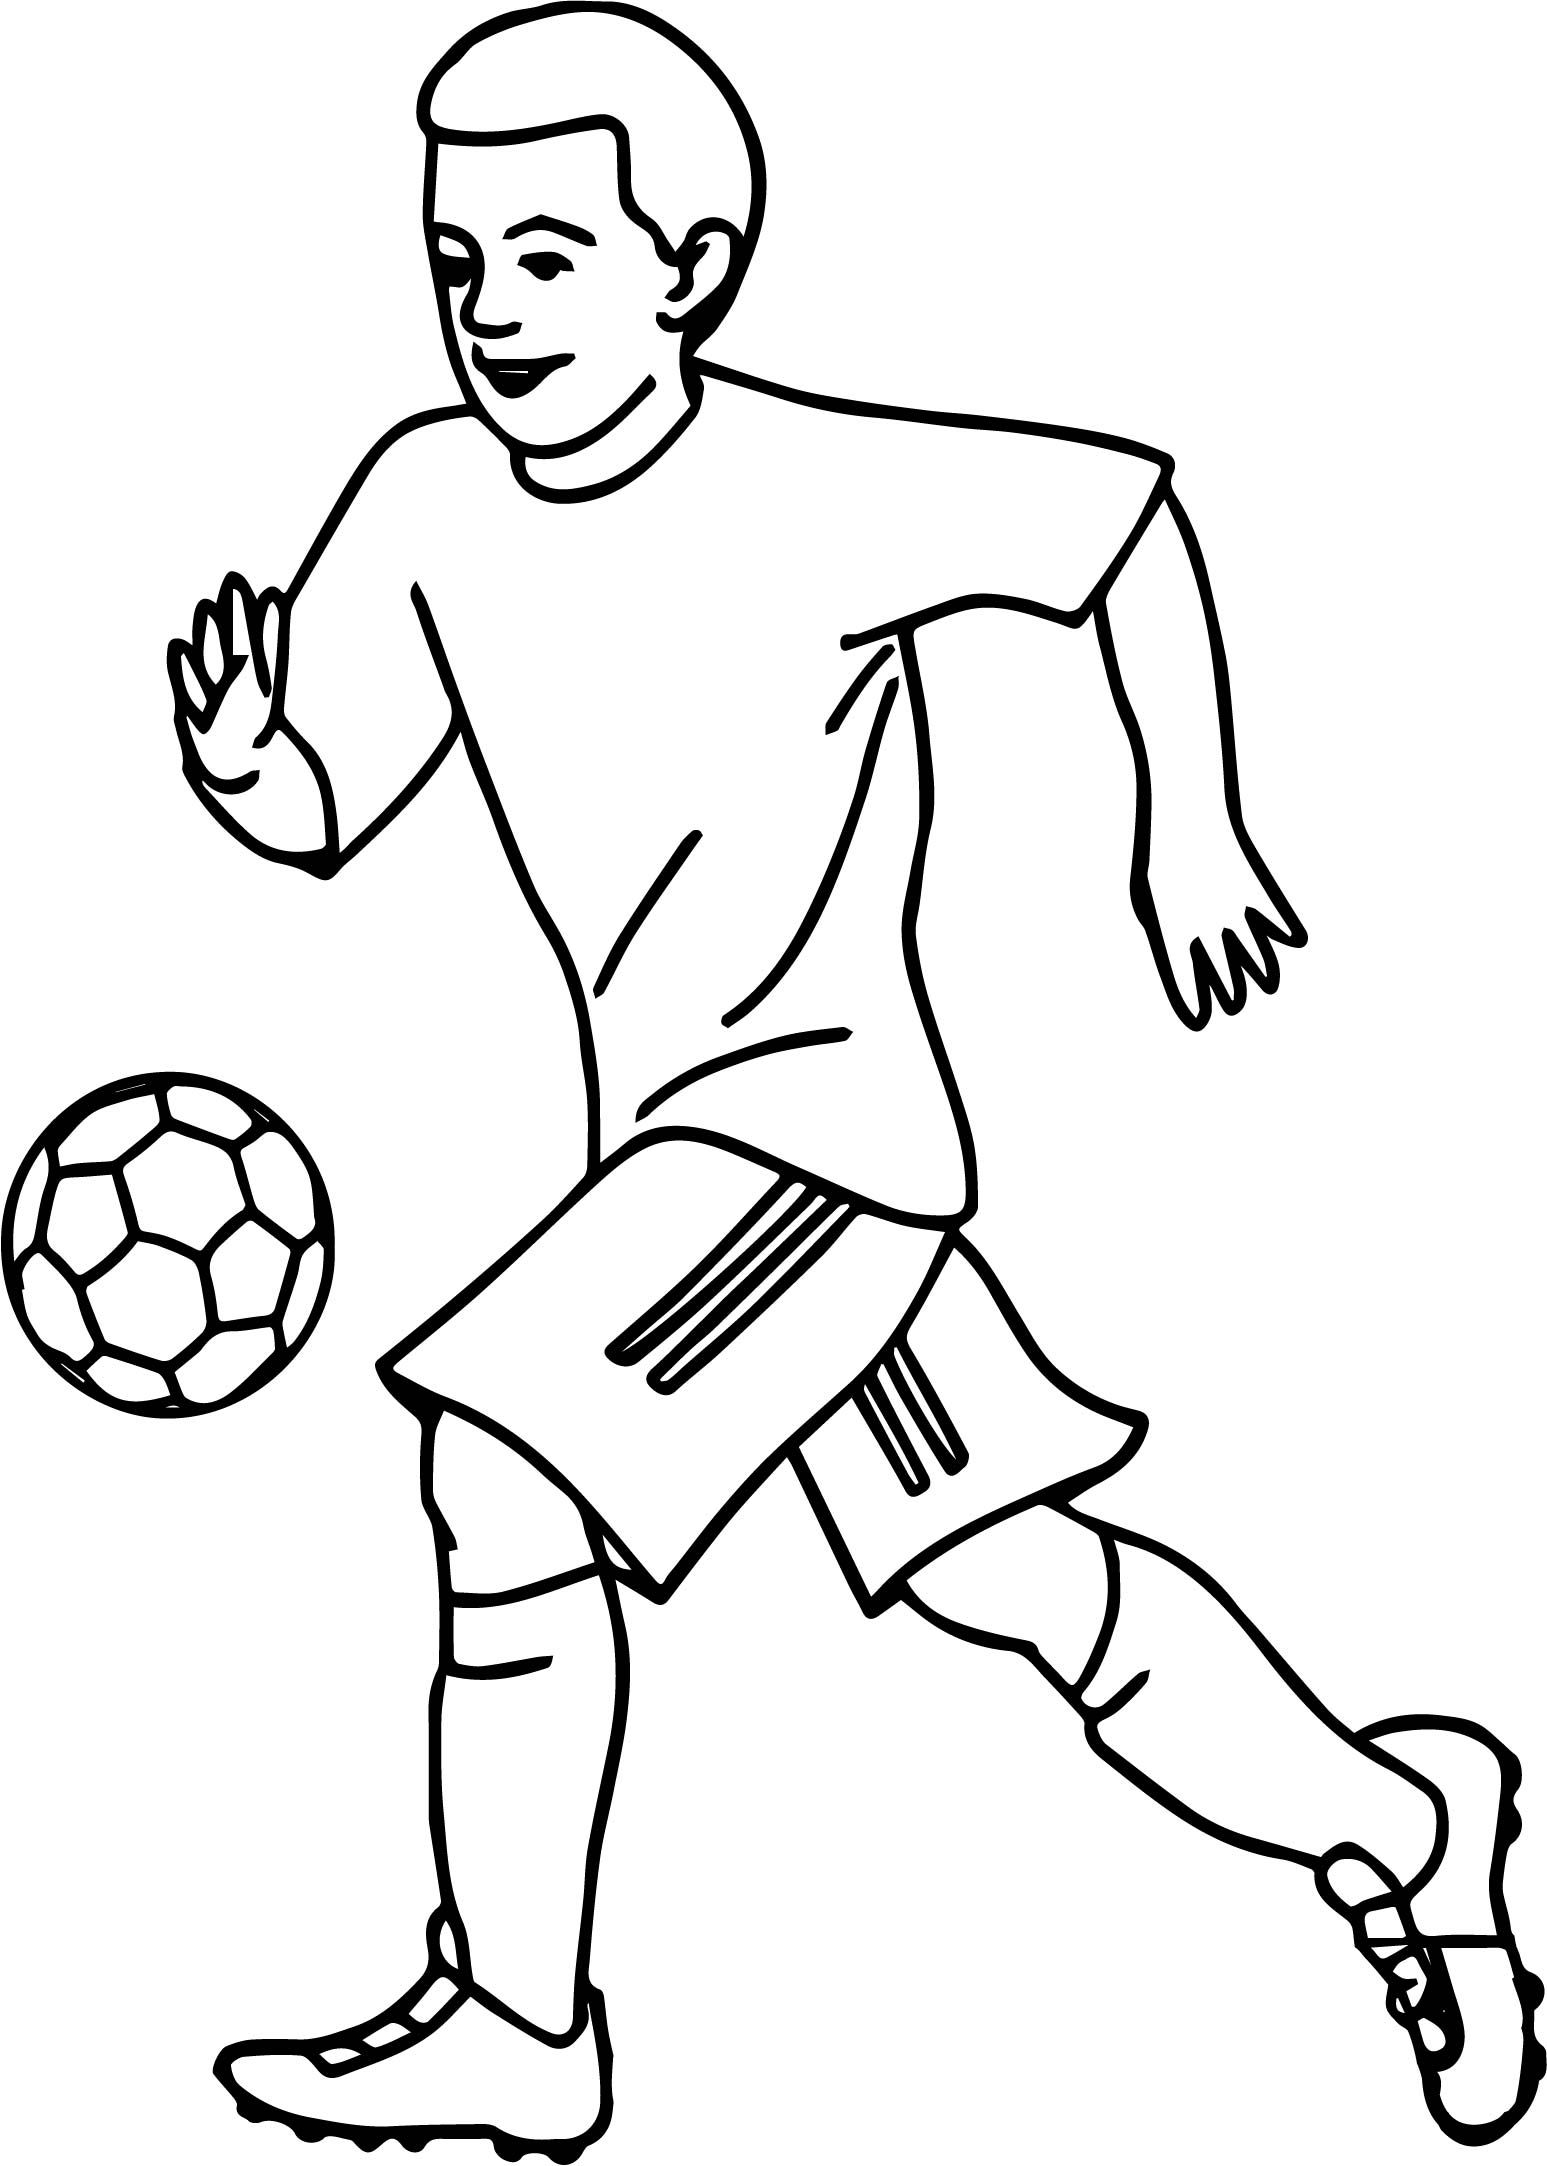 awesome soccer sports playing football